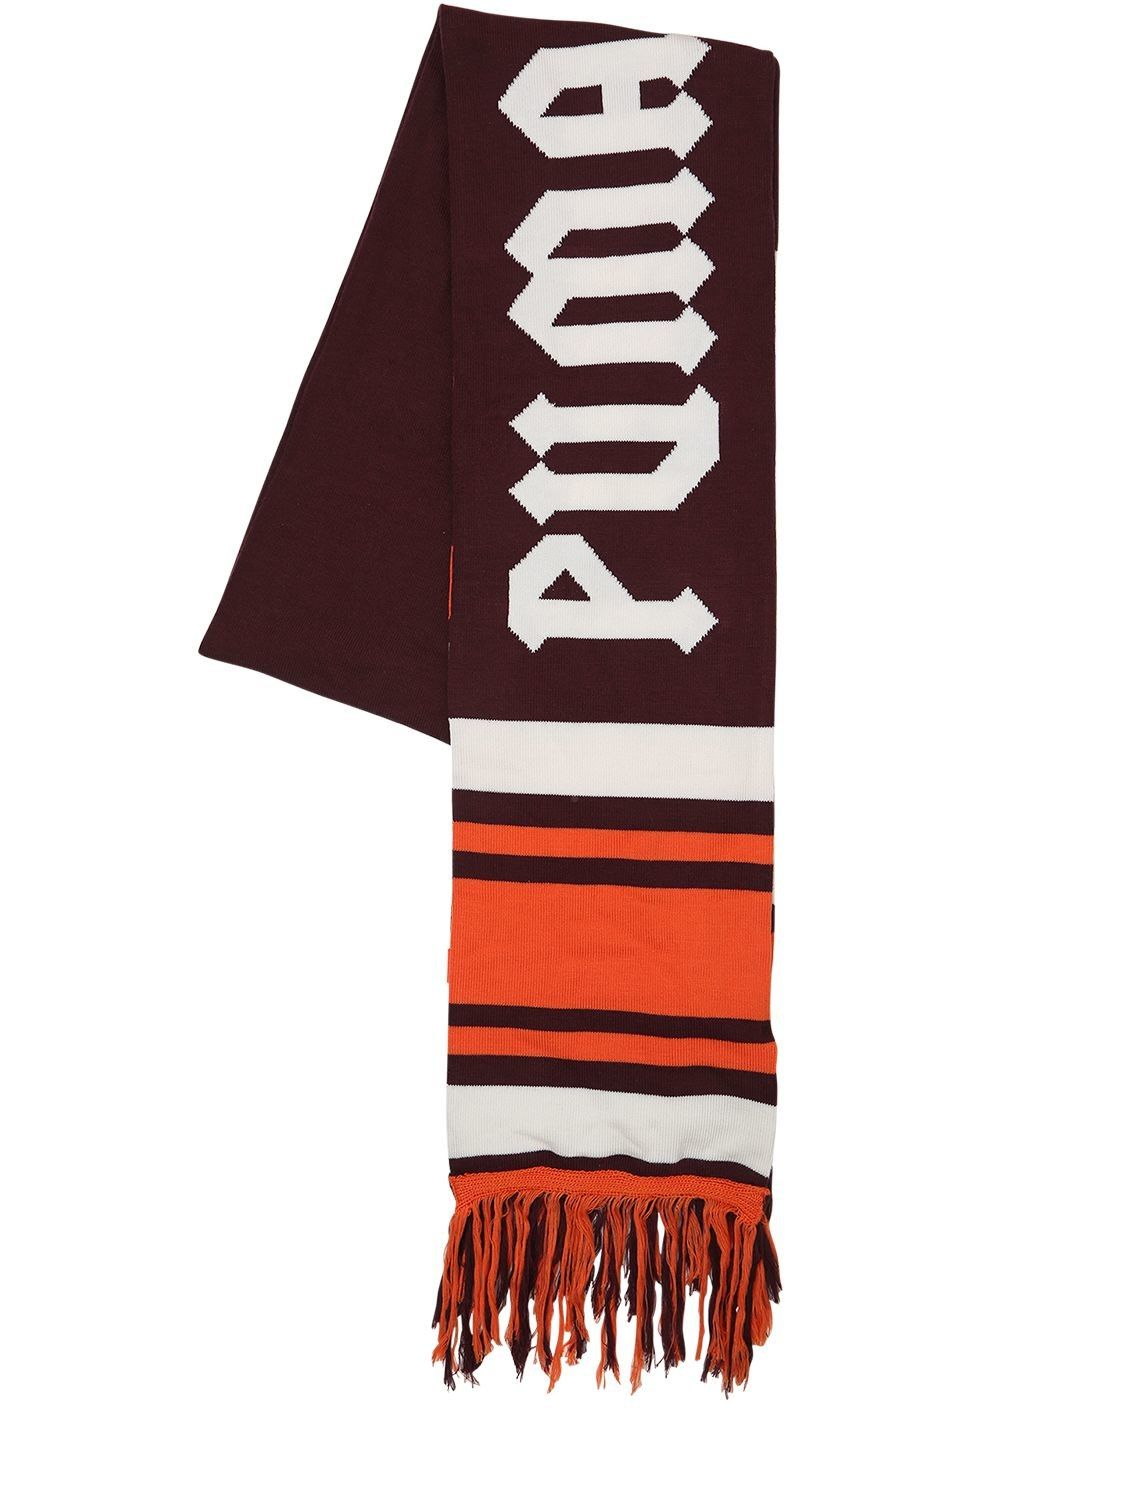 LONG VARSITY SCARF - ACCESSORIES - Oblong scarves Fenty Puma by Rihanna wRqmuHe18k